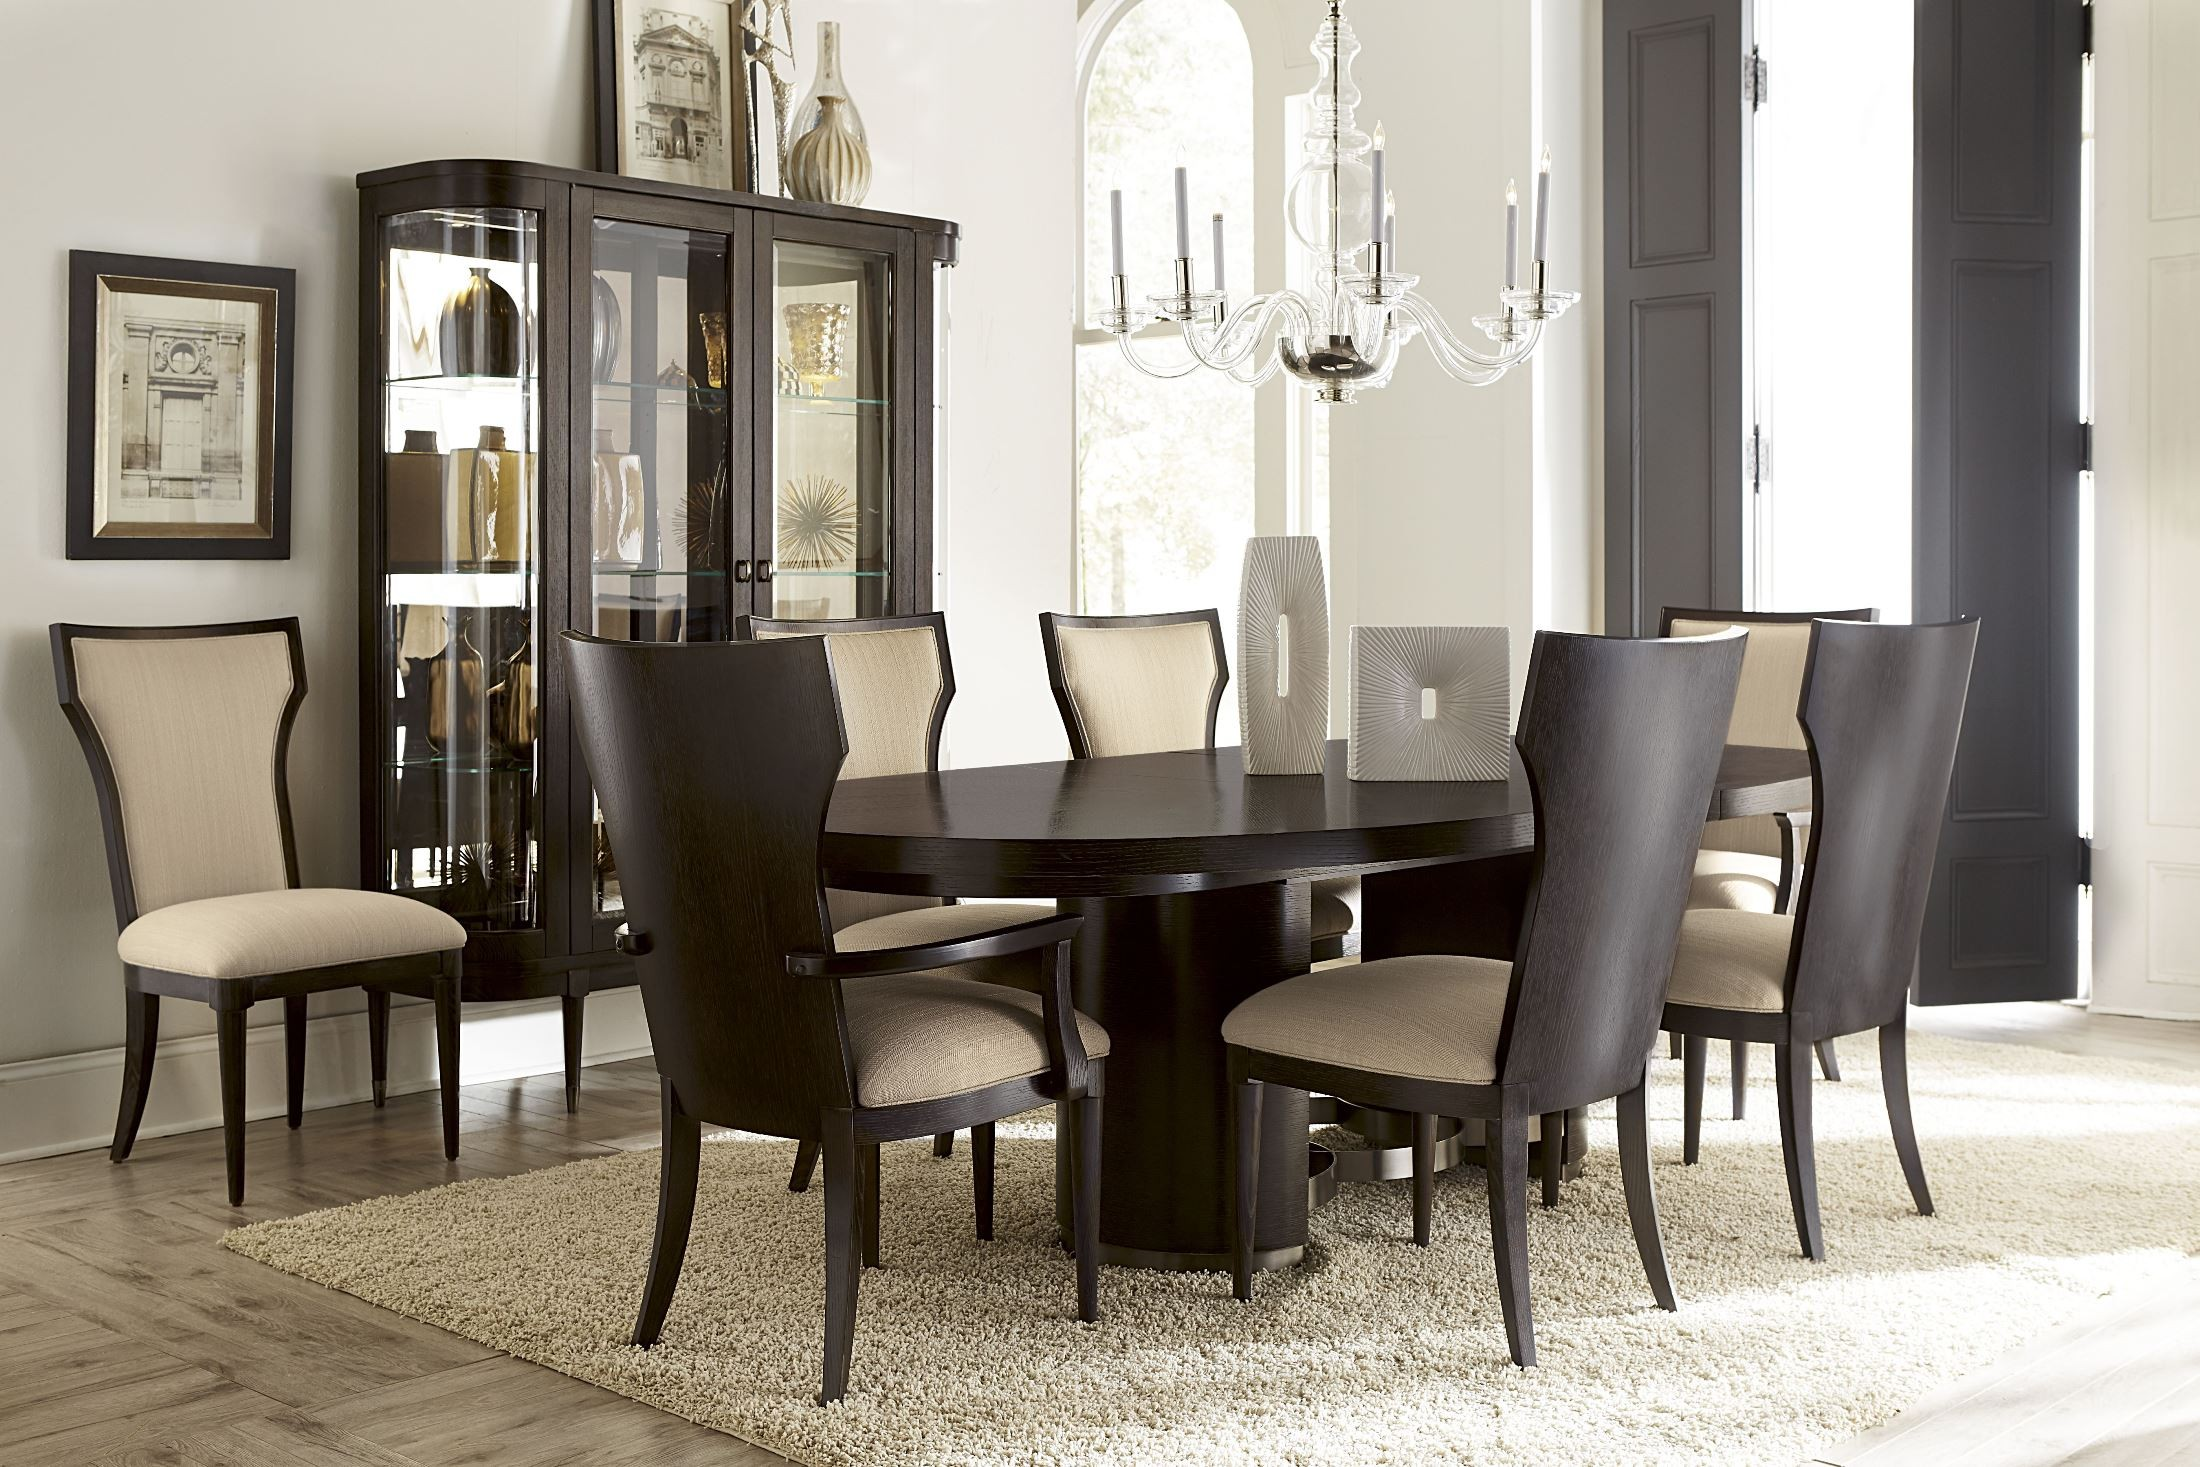 greenpoint oval dining room set from art 214223 2304 danimore oval dining room set casual dining sets